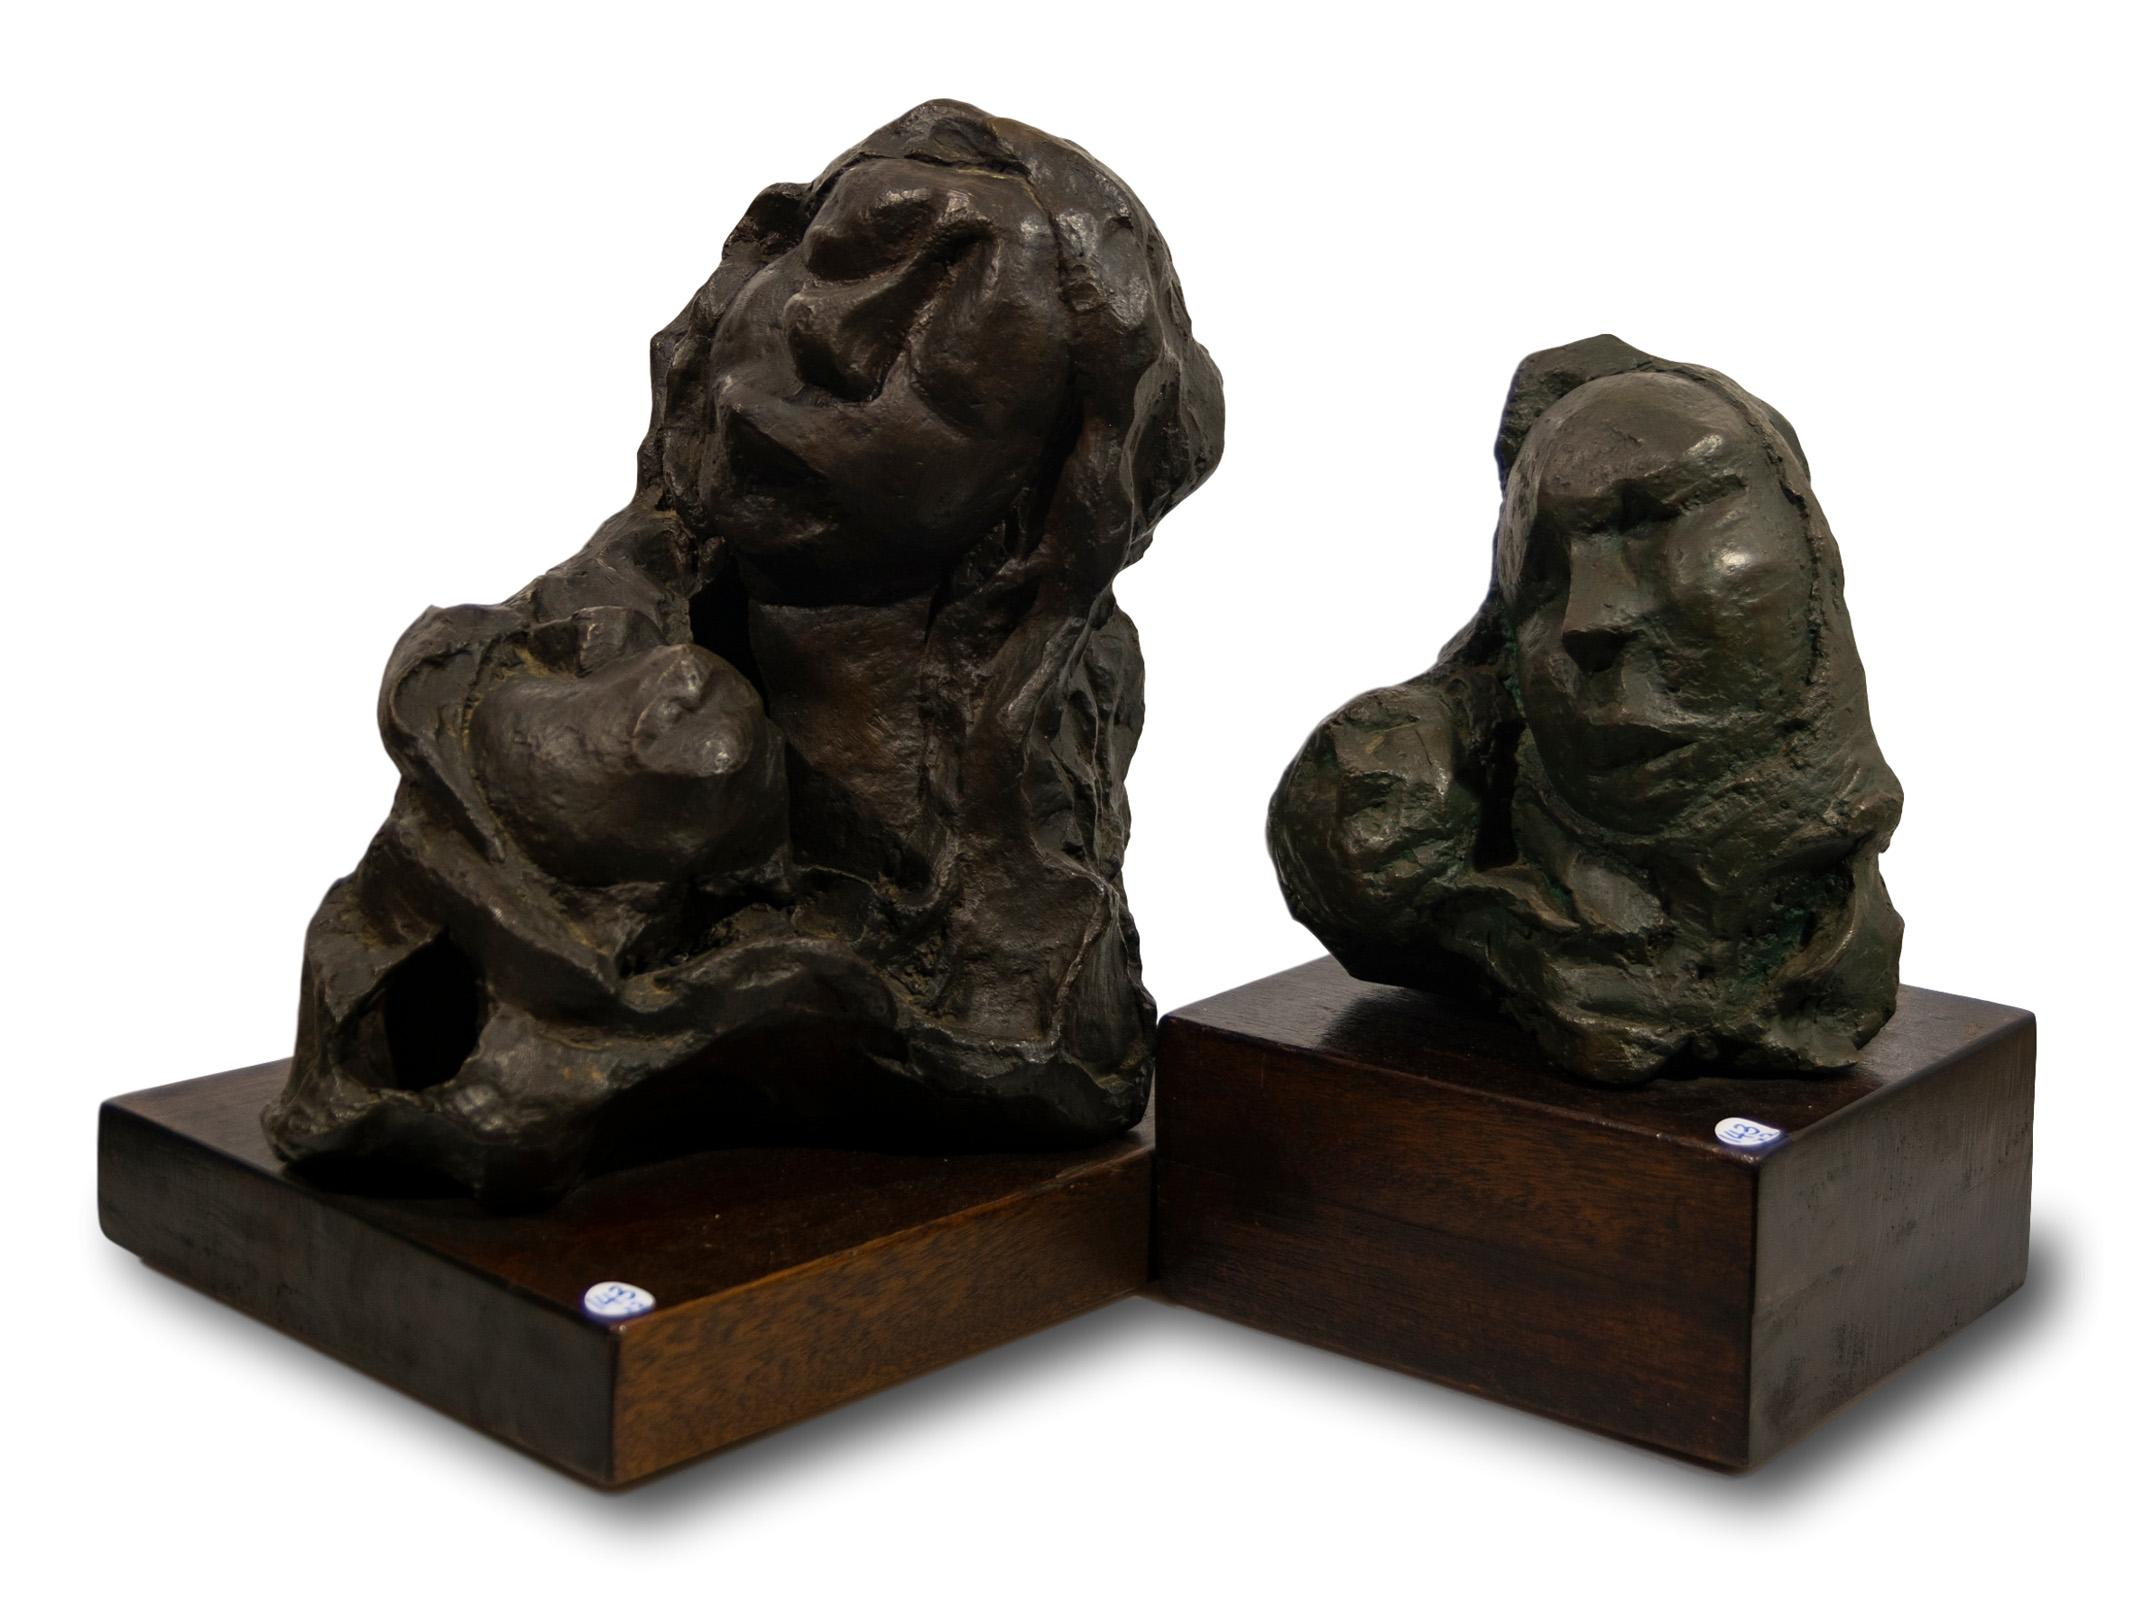 Ben Macala (SA 1938 - 1997) 2 x Bronzes, Mothers & Childrens, One Signed, 40cm & 32cm including bases